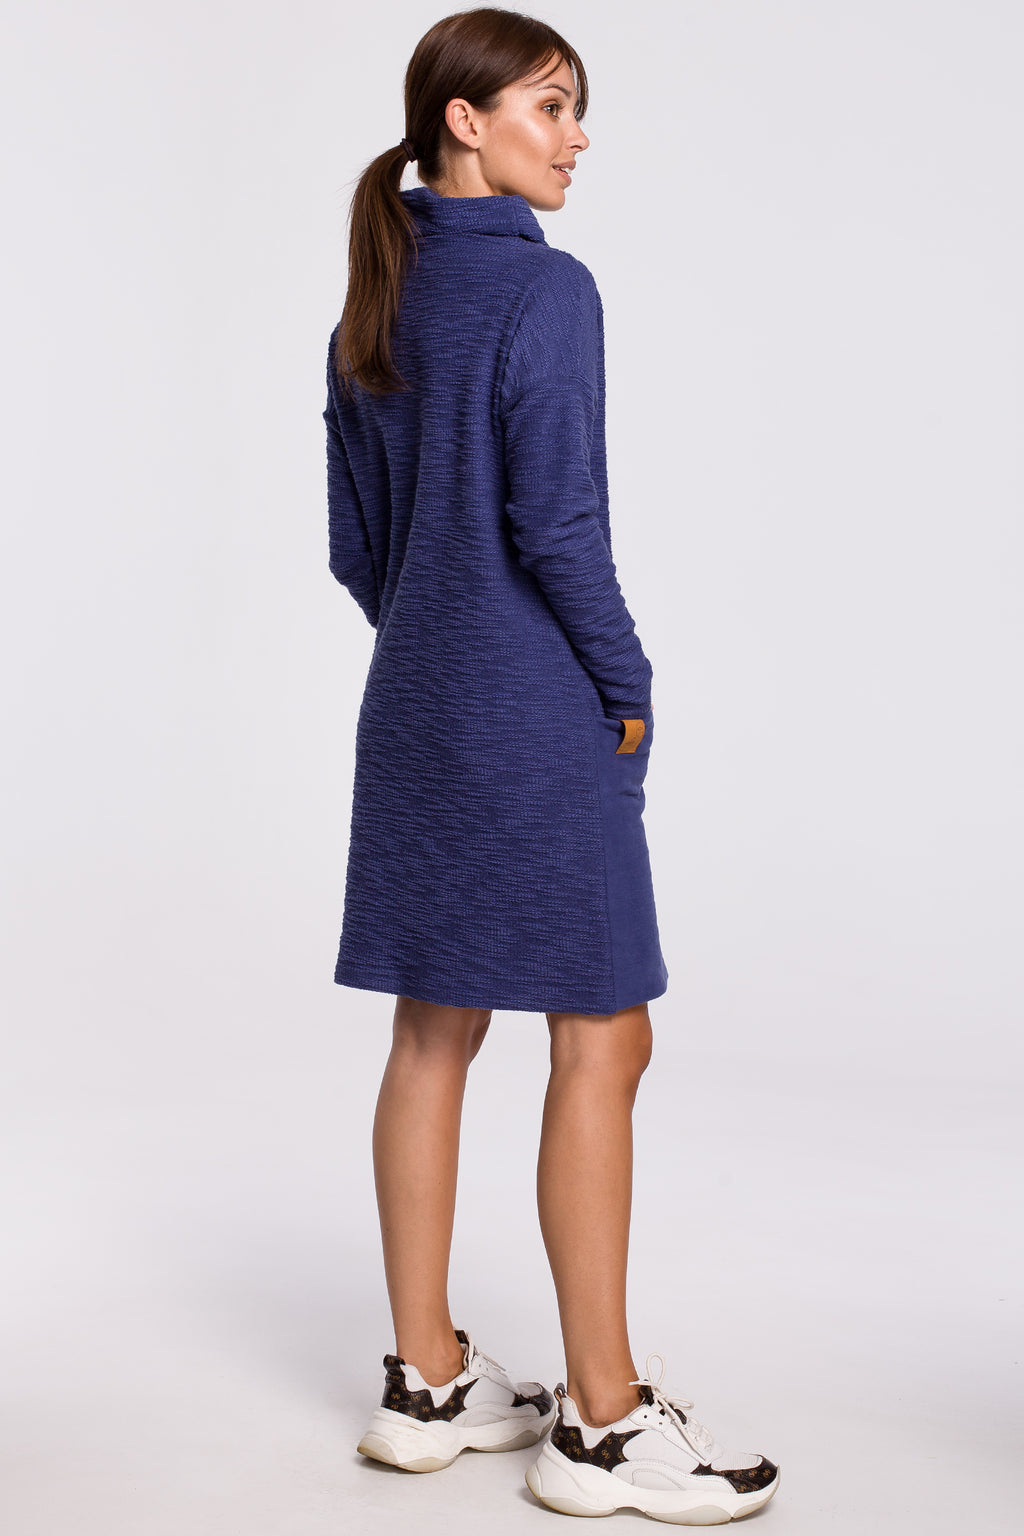 Double Textured Indigo Blue Cotton Dress With Patch Pockets - So Chic Boutique